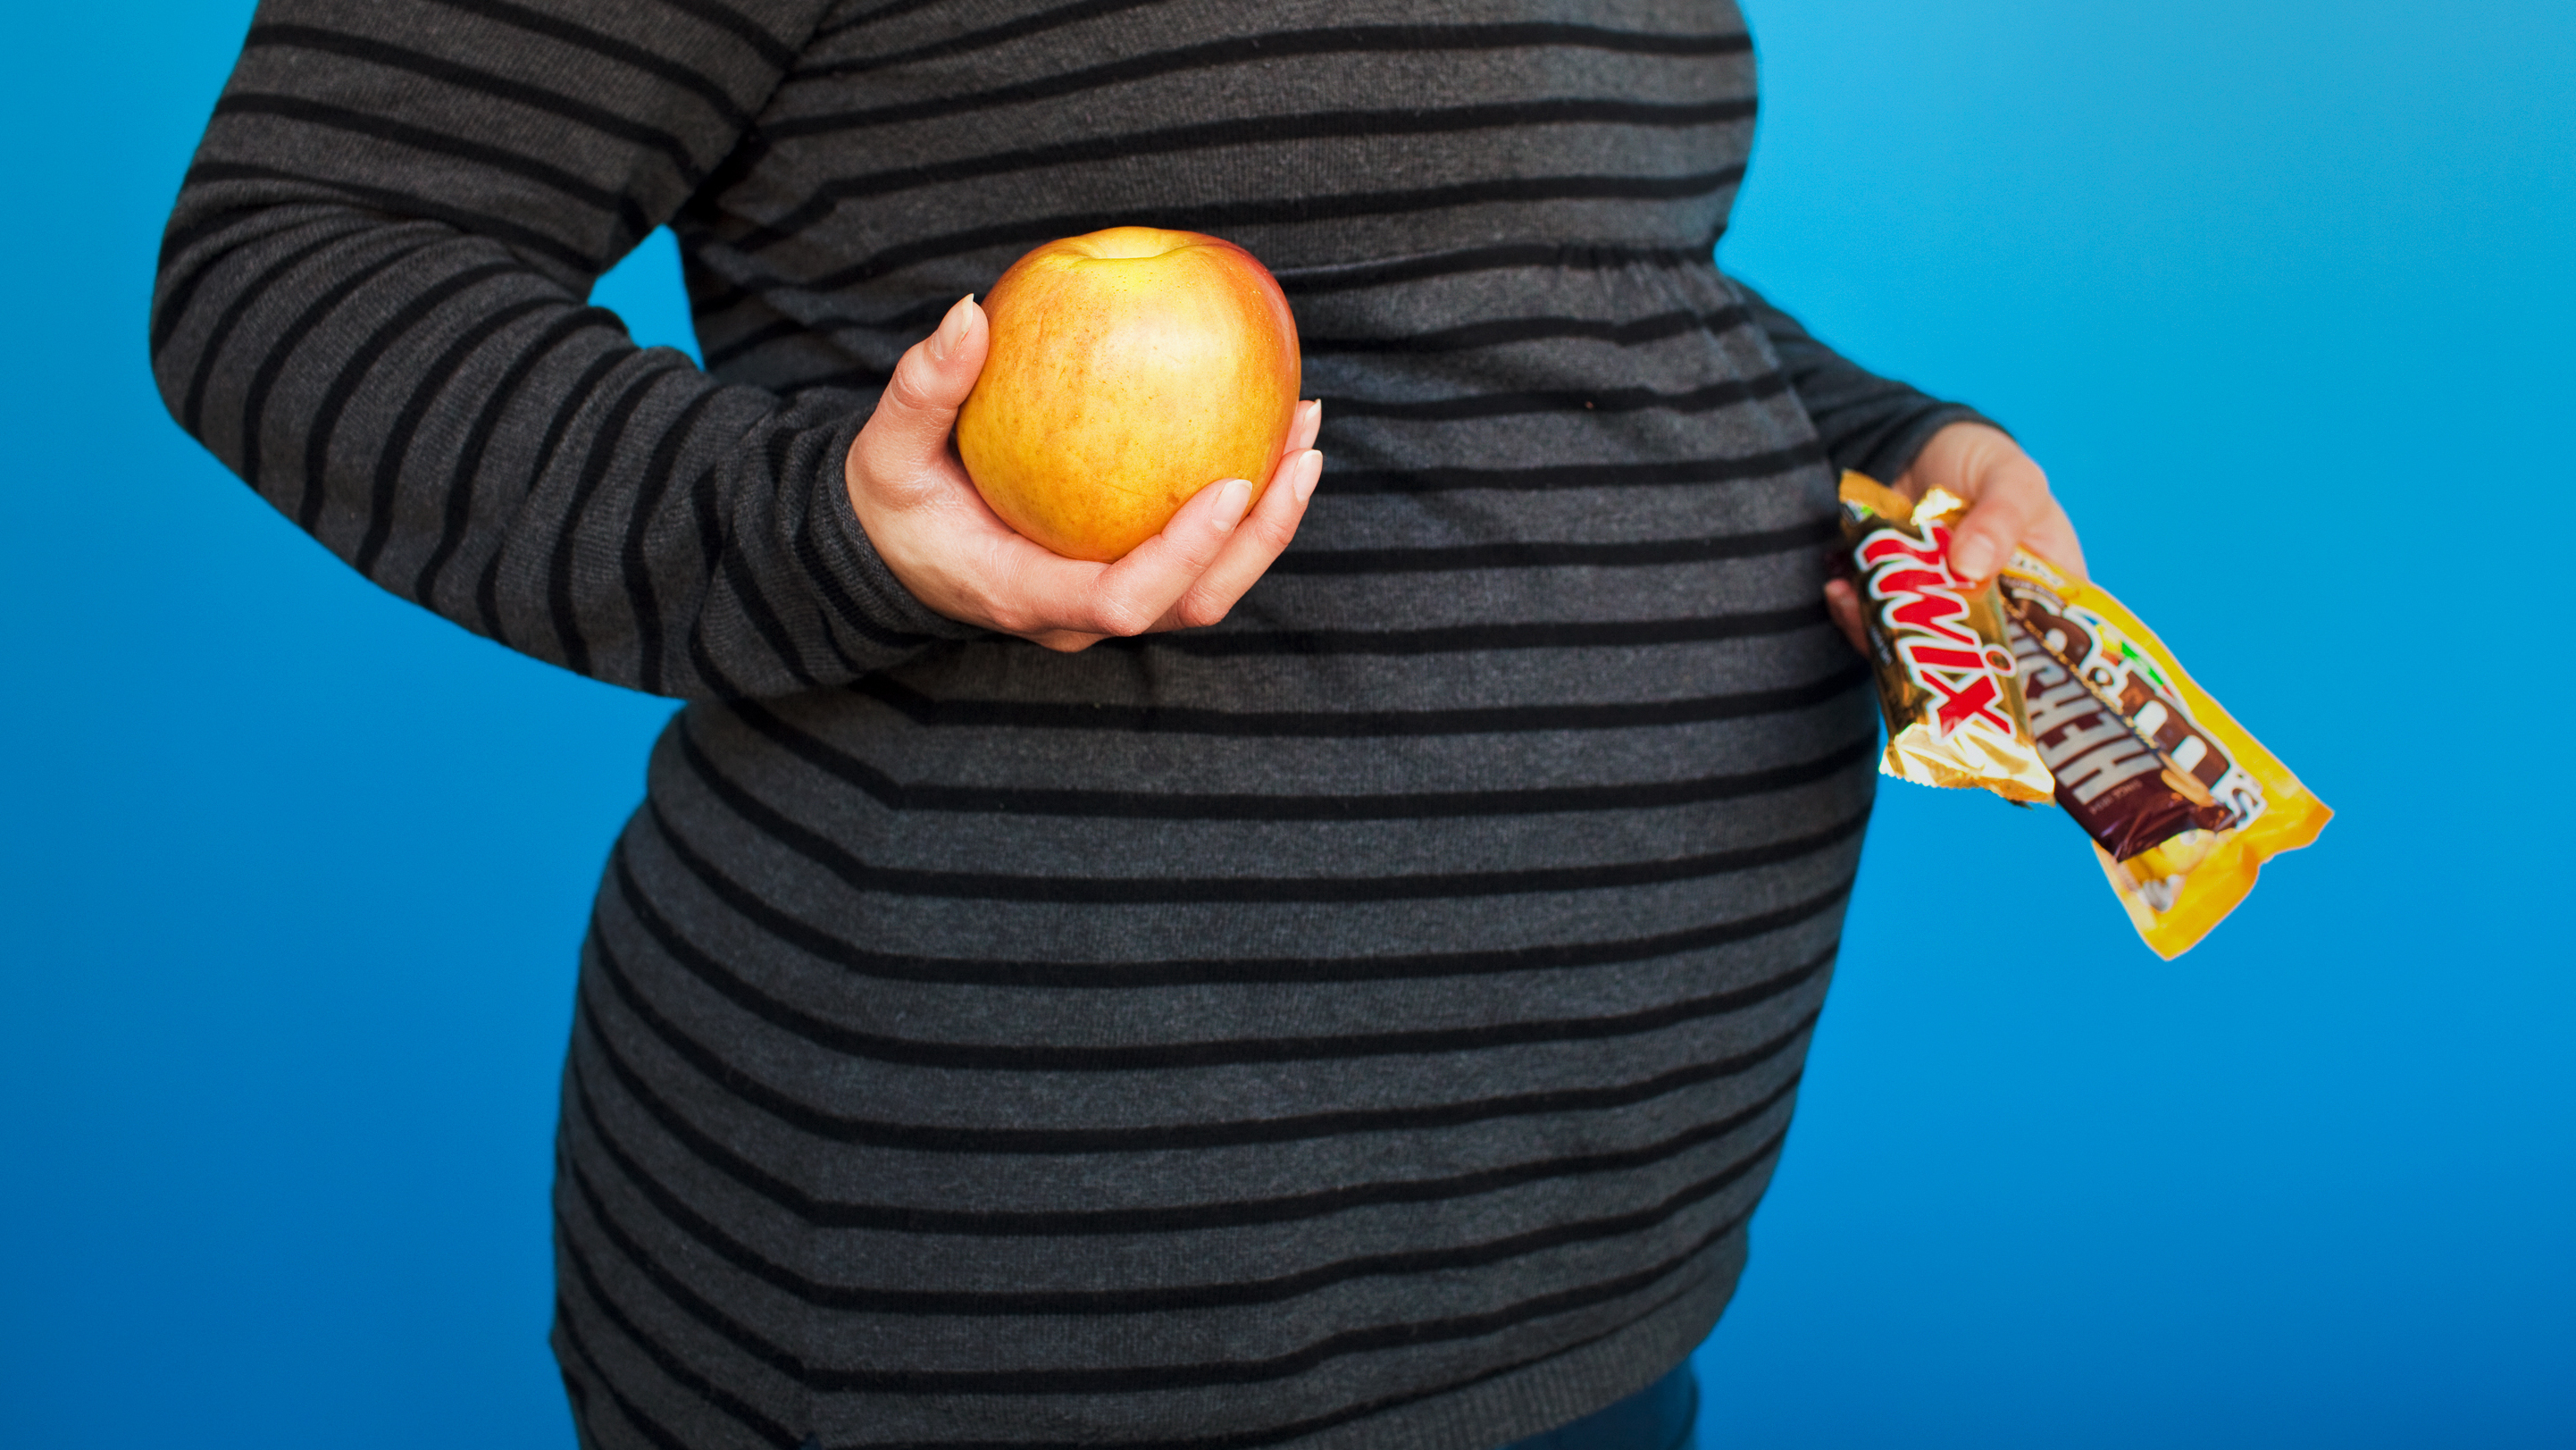 Can Mom's Pregnancy Diet Rewire Baby's Brain For Obesity?